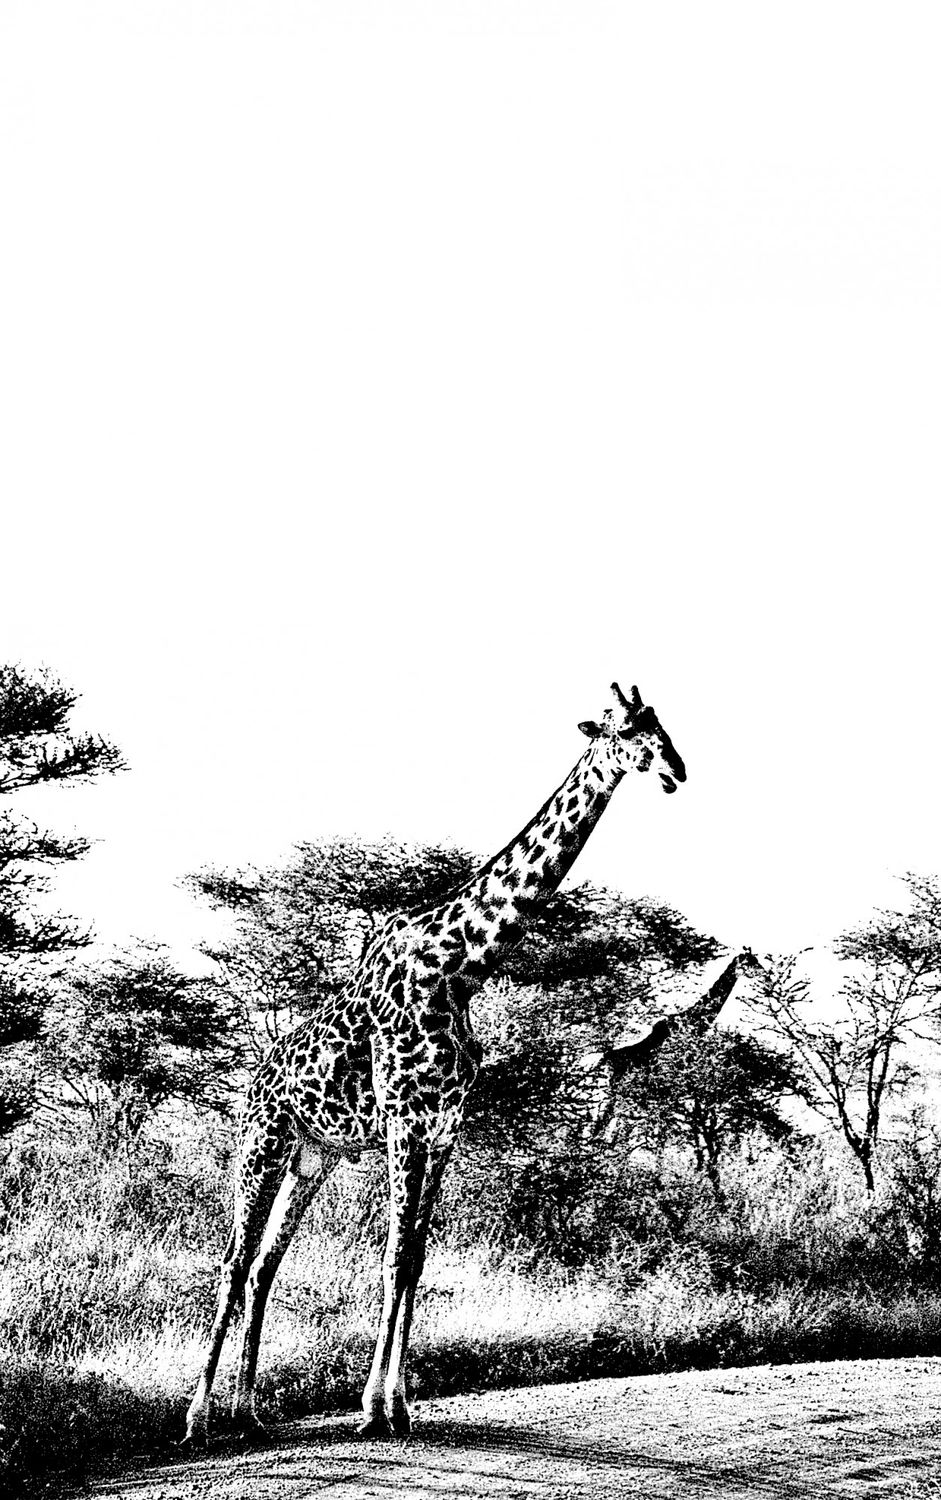 Giraffe - 3, Serengeti 2016   Edition 1 of 2